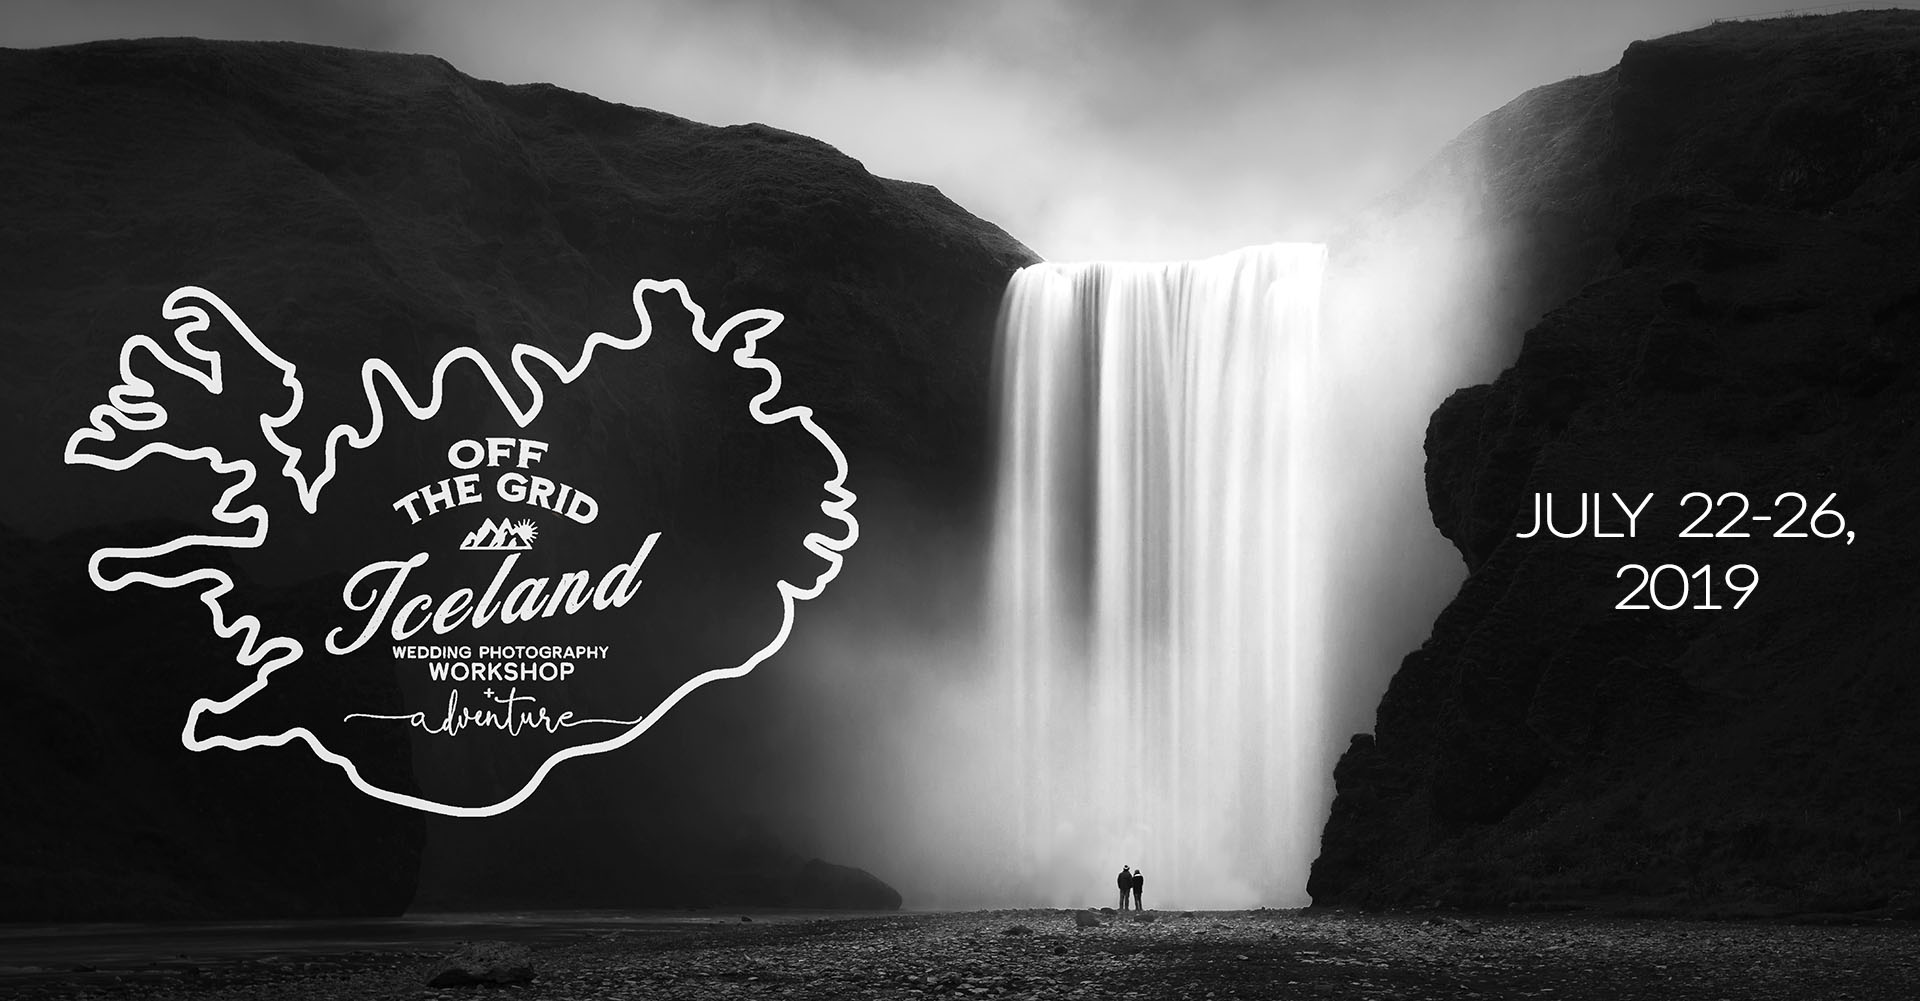 Workshop-Iceland-Hero-Image copy.jpg